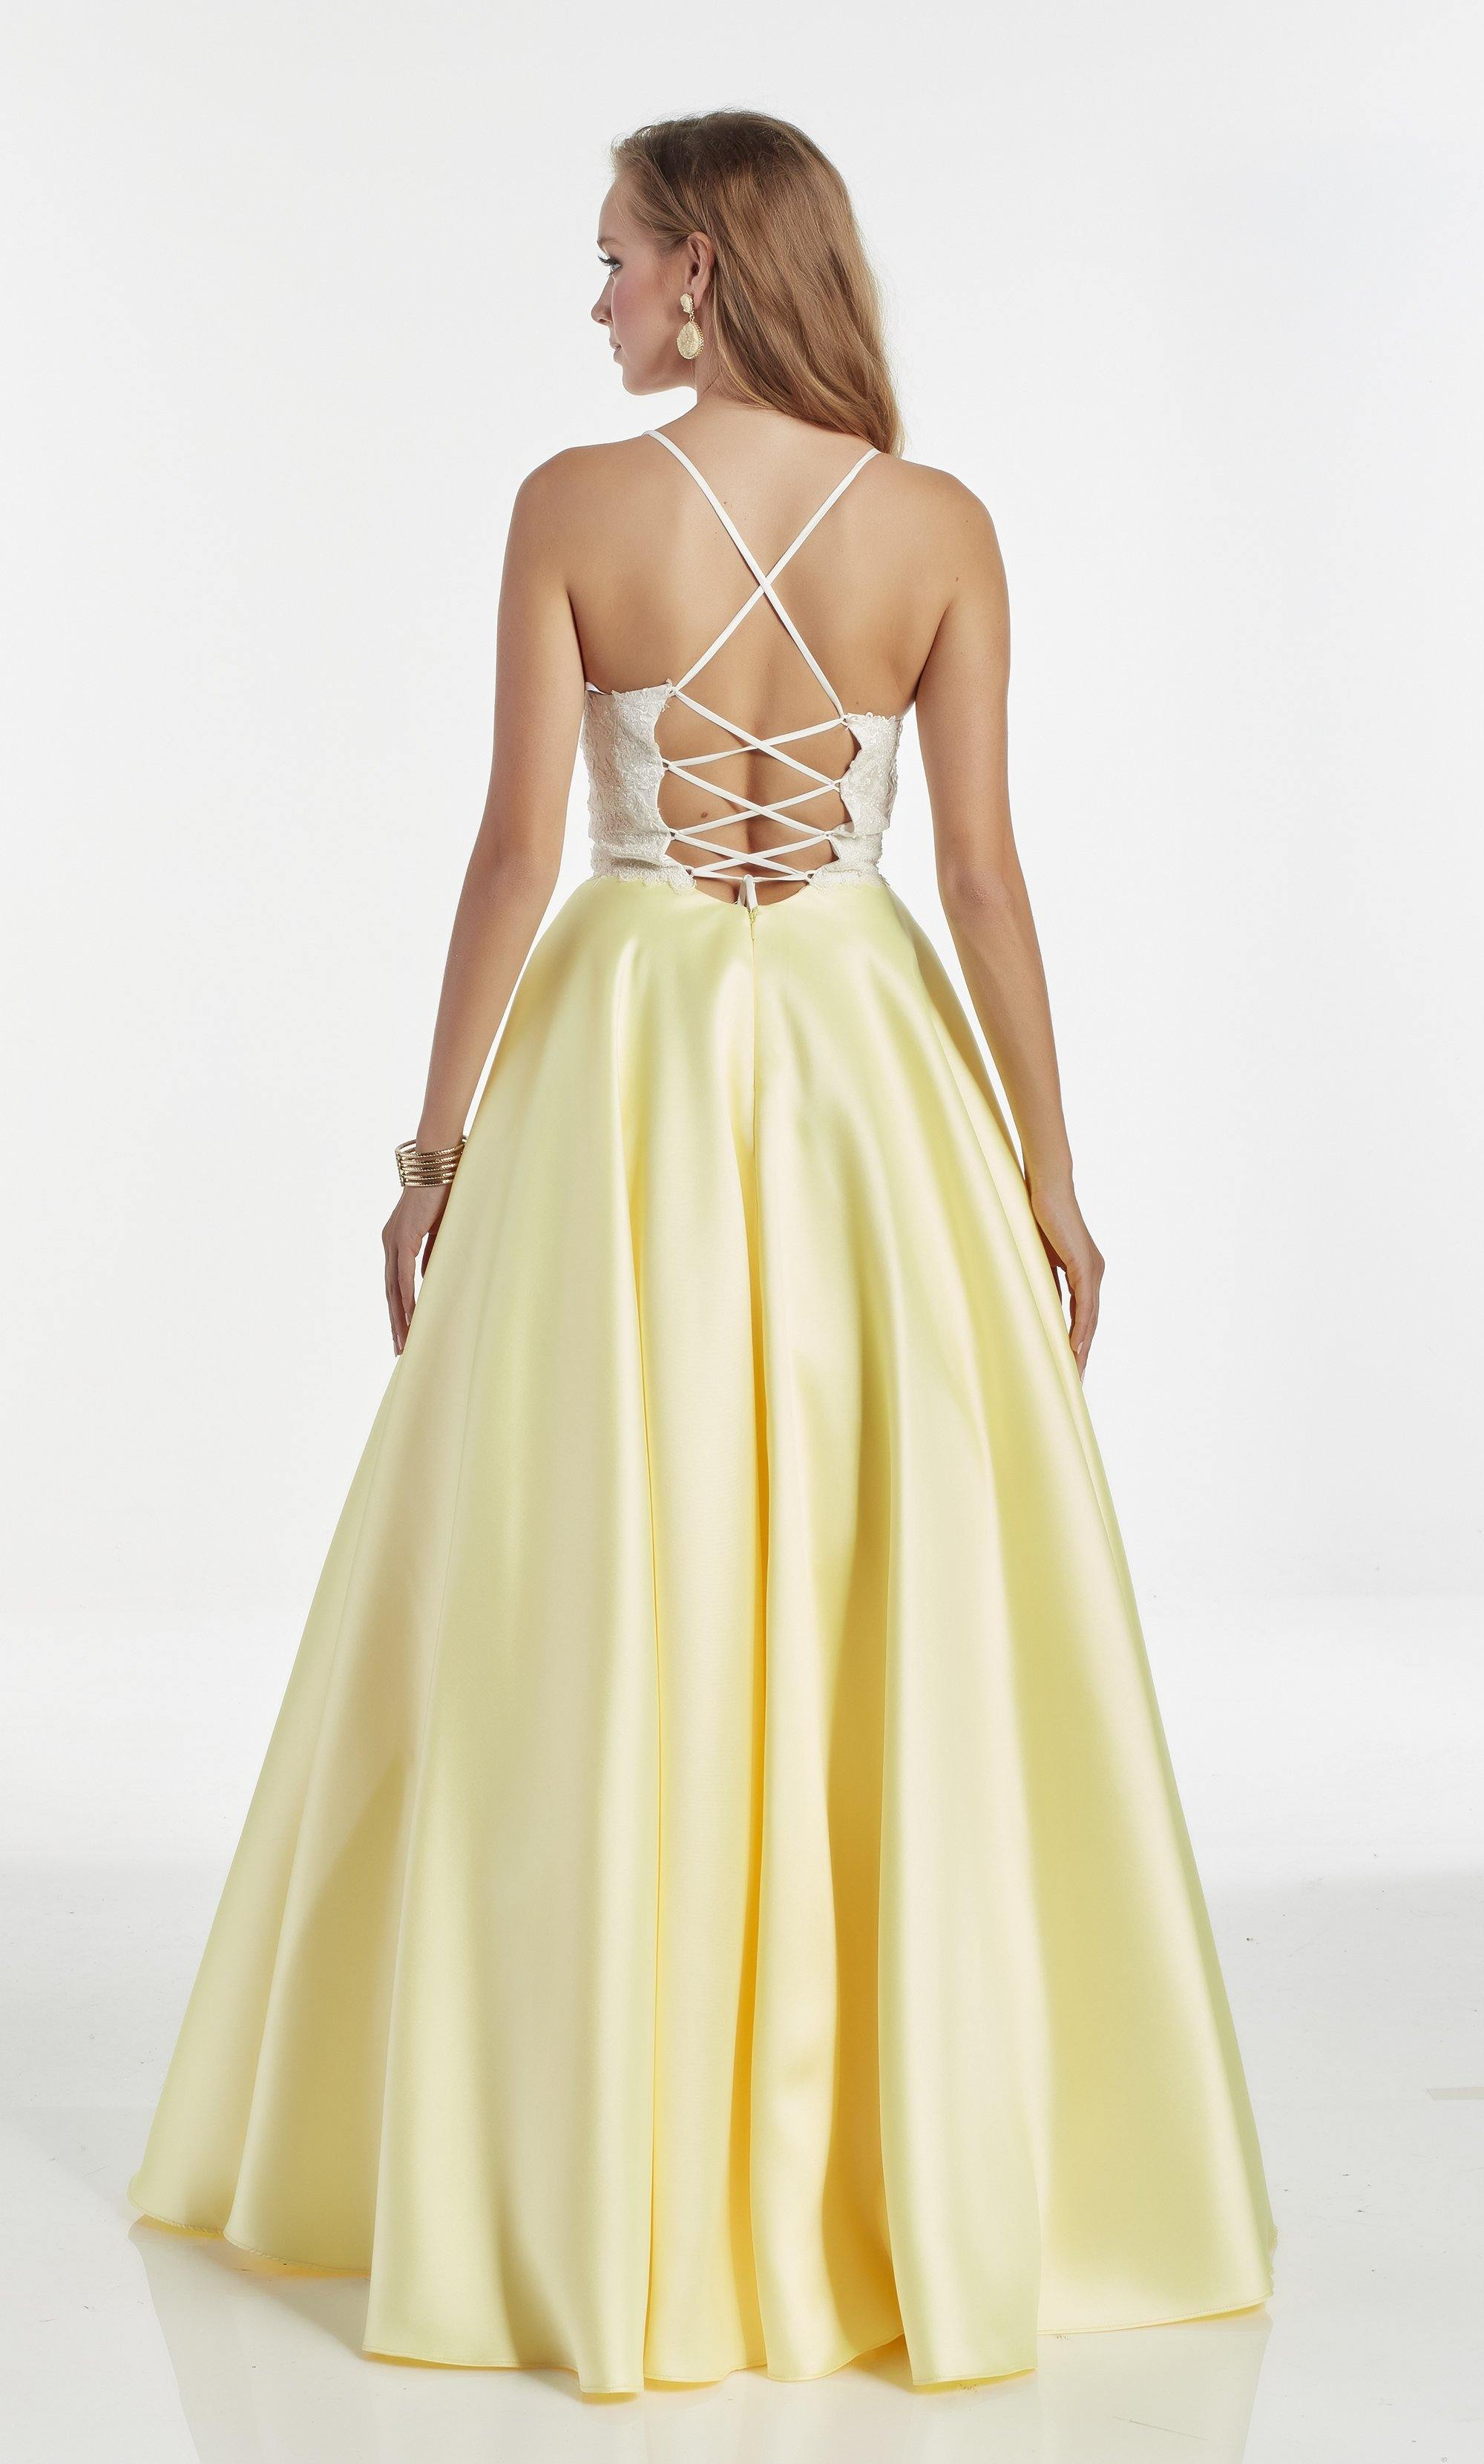 Plunging neckline ballgown with a White lace bodice and Light Yellow mikado skirt